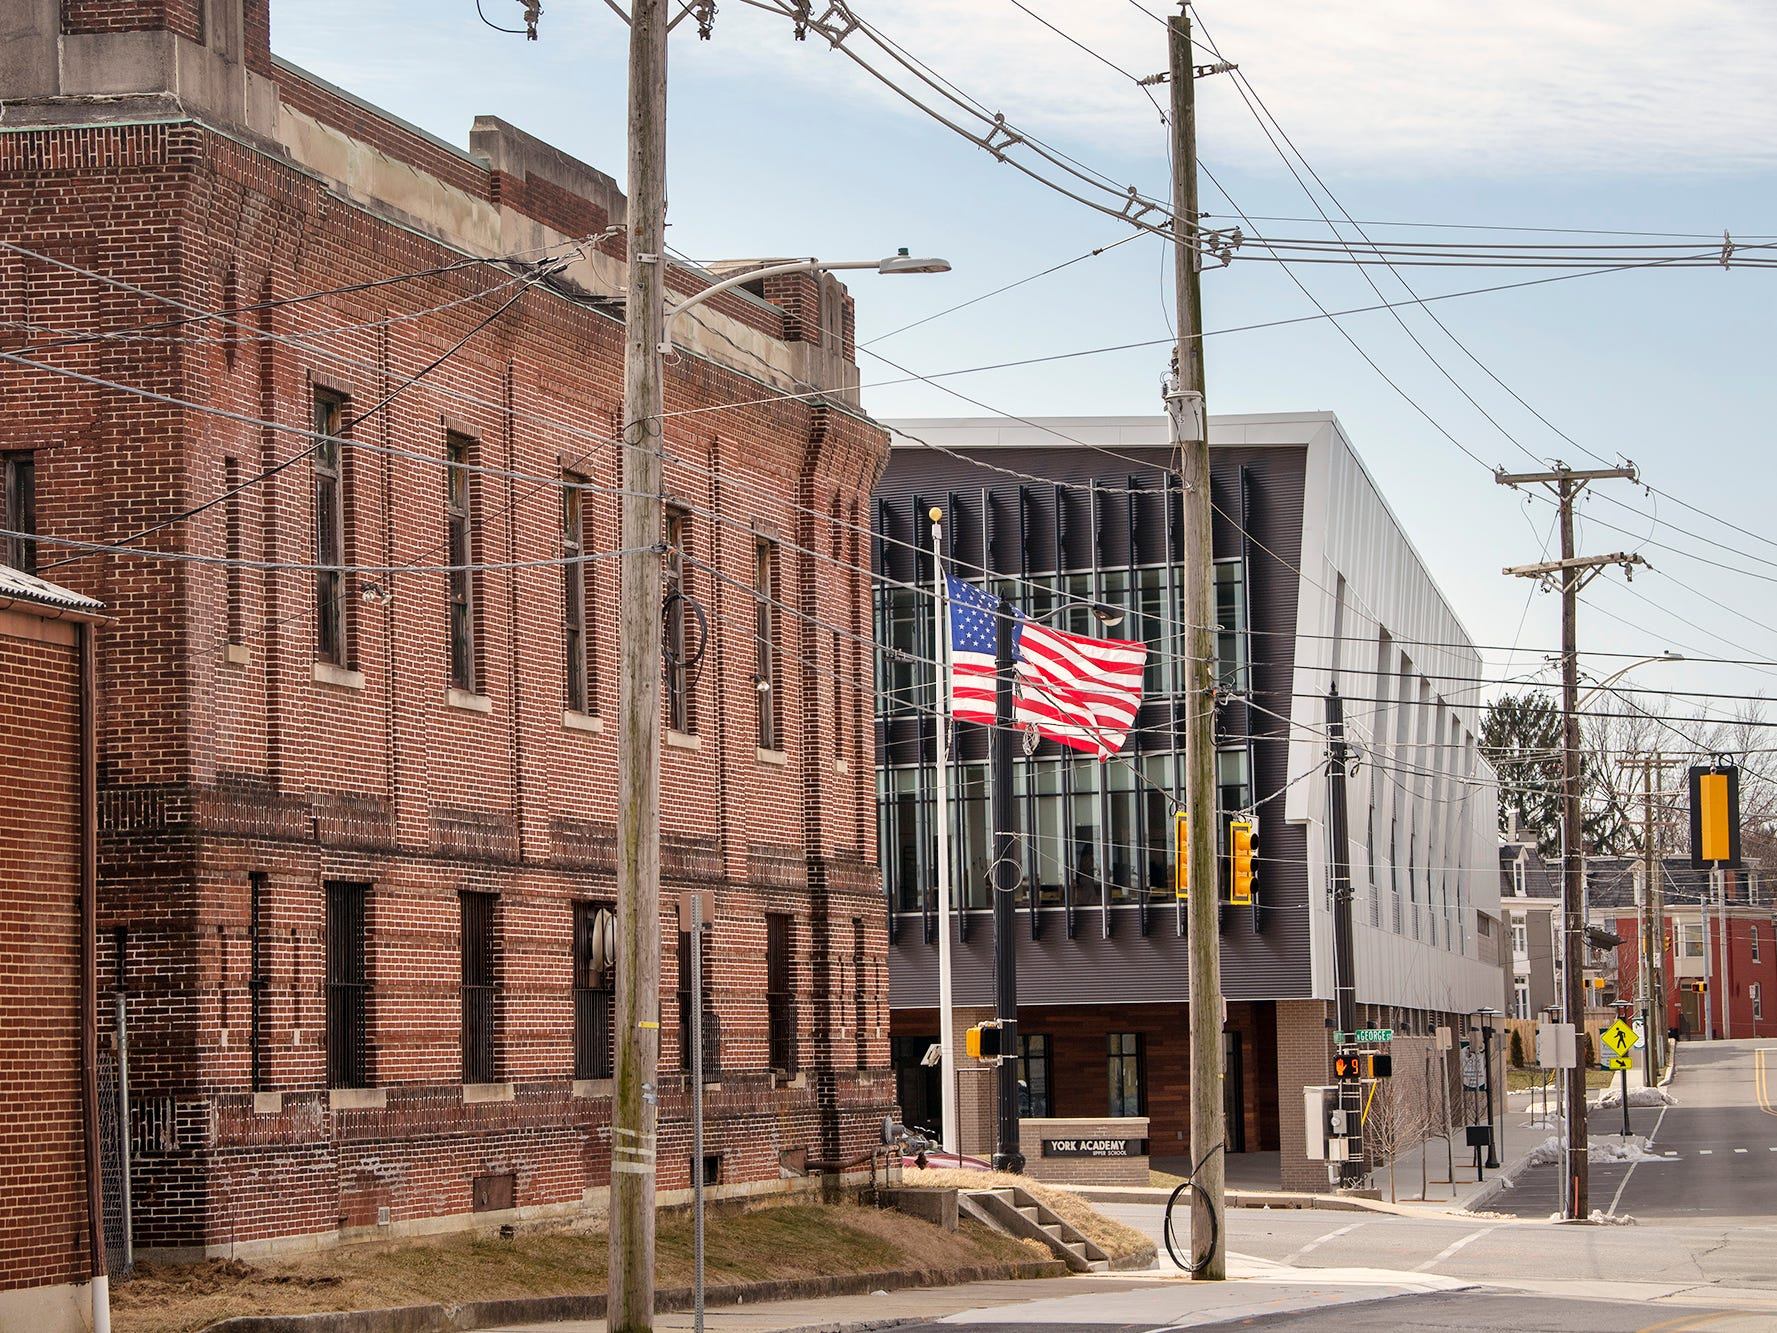 The York Academy building can be seen across the street from the armory. The York Armory, a brick fortress built in 1913 once used by the Pa. National Guard, will soon be transformed into Keystone Kidspace, an educational experience for families. It's expected to open in 2020.